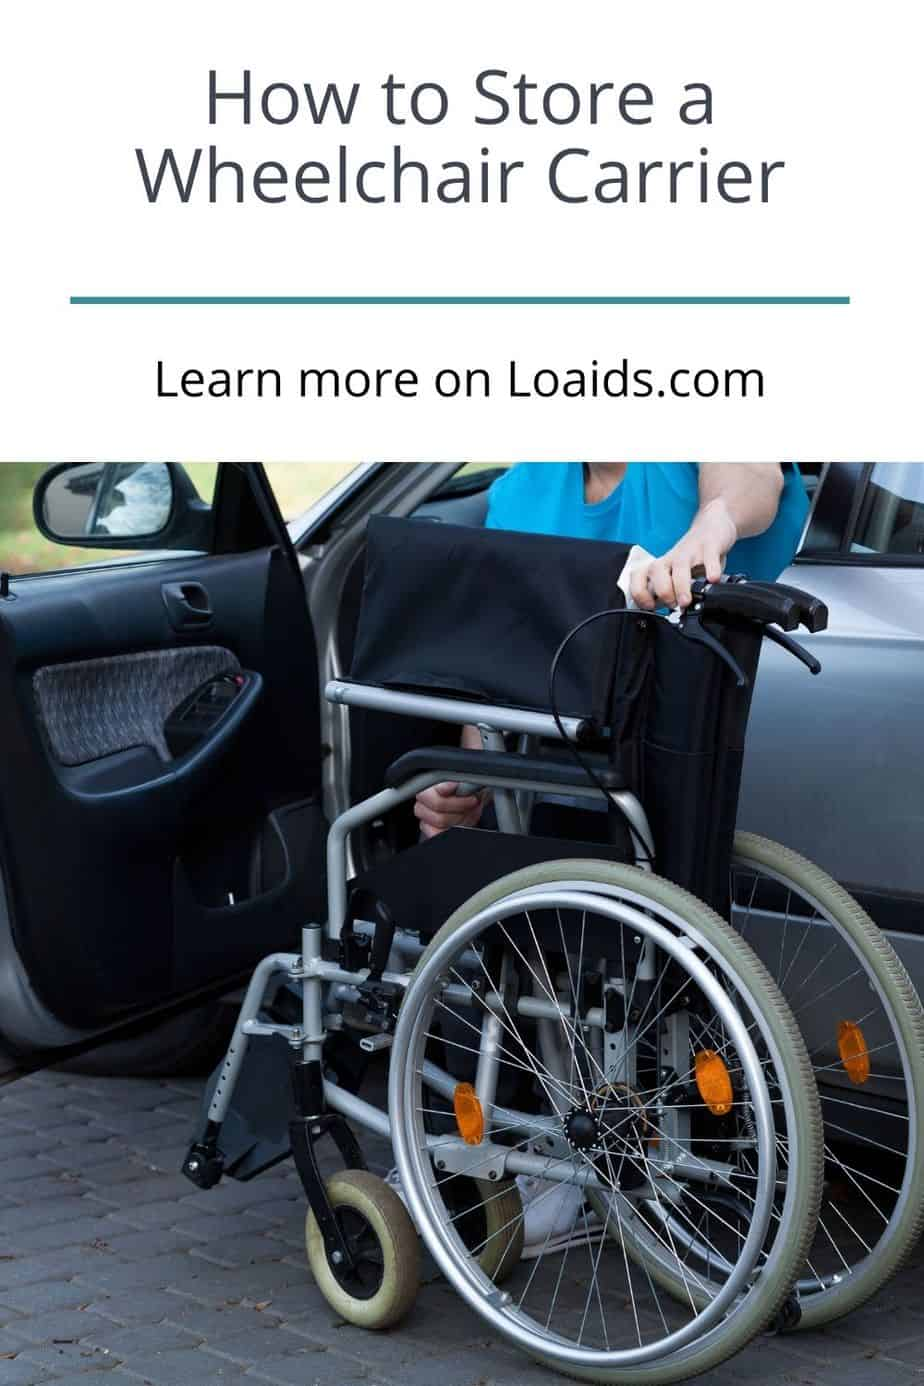 Knowing how to store a wheelchair carrier properly is a must to make sure that your wheelchair is safe during transit. Read on for more info and useful tips!